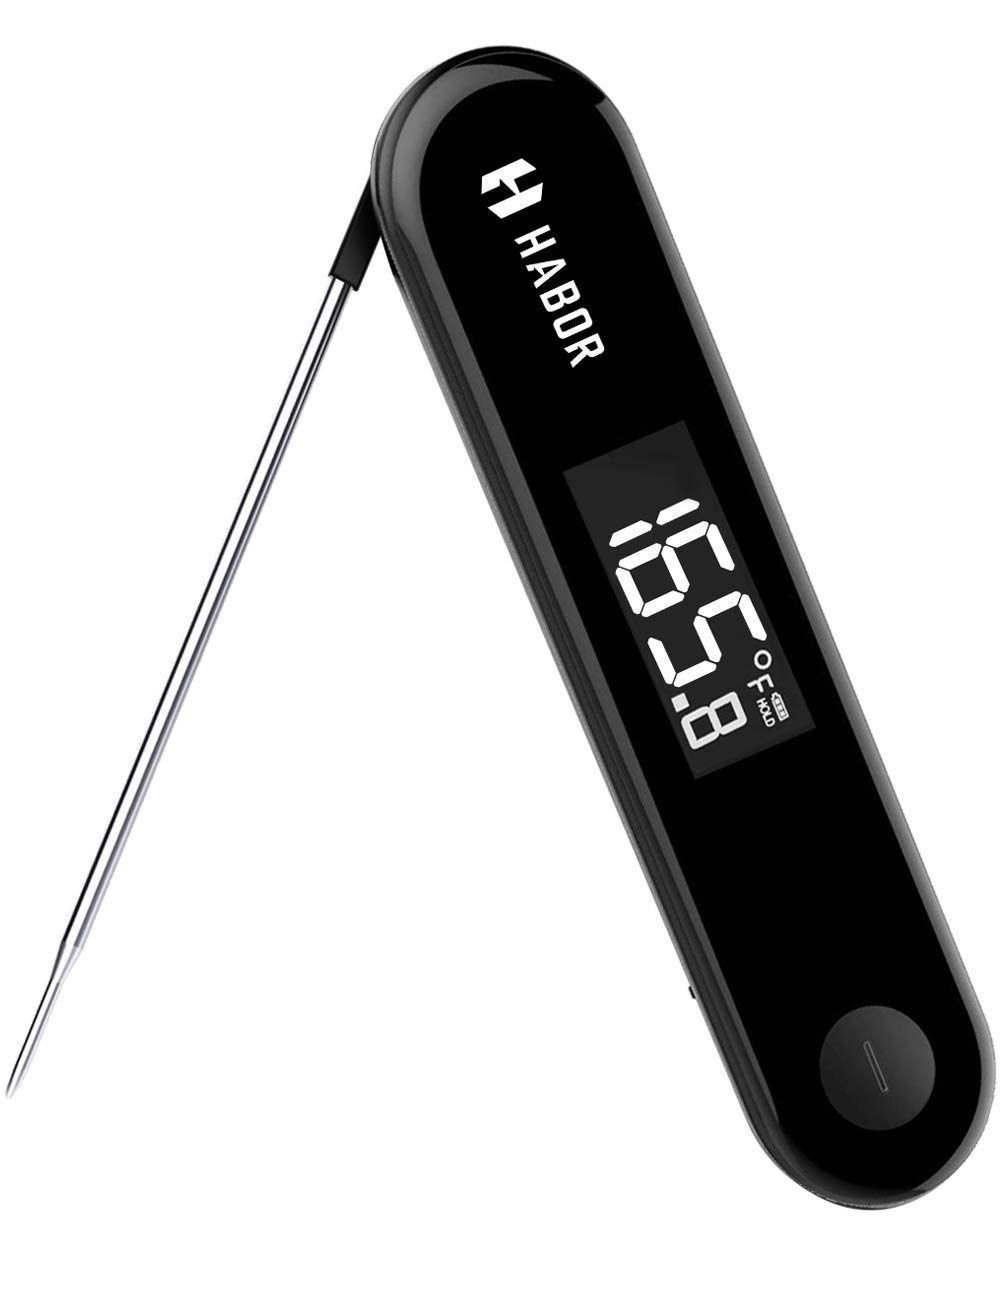 Rechargeable Cooking Thermometer, Habor IPX7 Waterproof Digital Candy Thermometer 3Seconds Instant Read Thermometer with Sensitive Touchable Button for Meat Kitchen Home Food BBQ Grill Smoker Milk